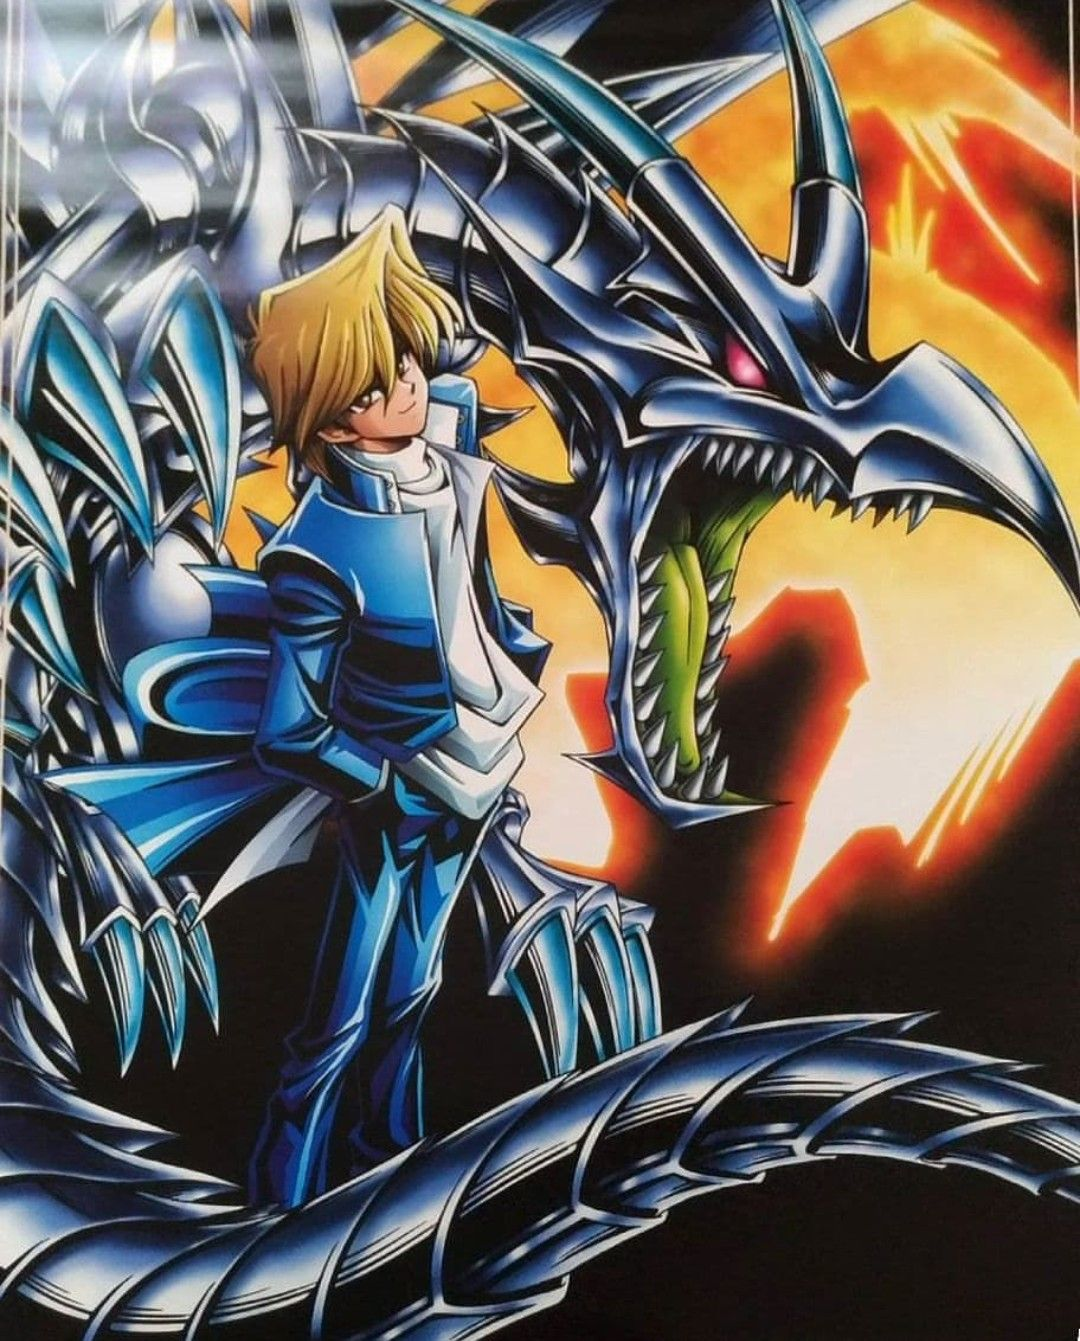 Joey And Red Eyes Yugioh Monsters Black Dragon Anime Art